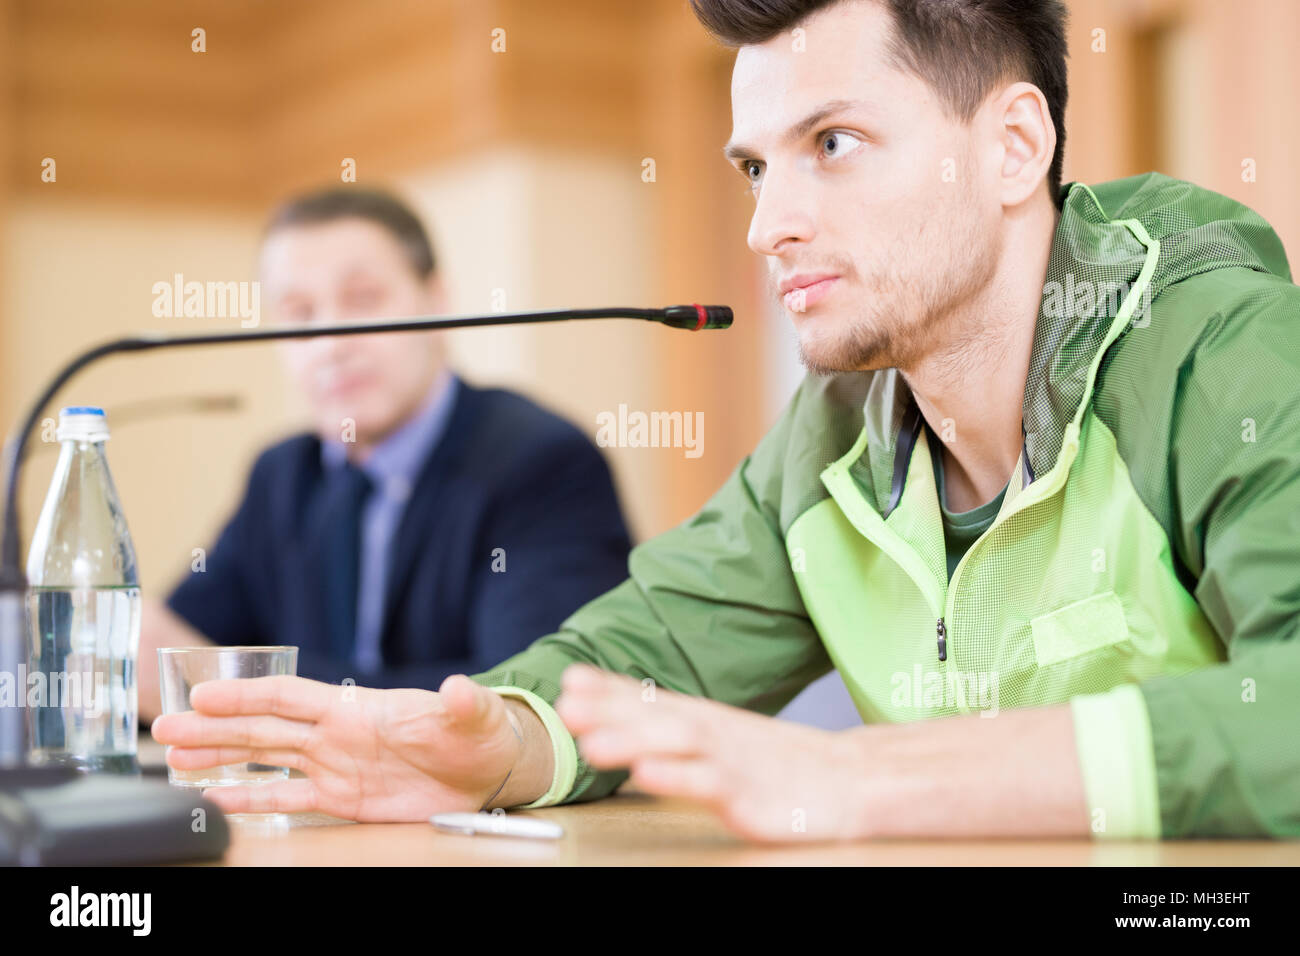 Handsome Sportsman Speaking  at Press Conference - Stock Image